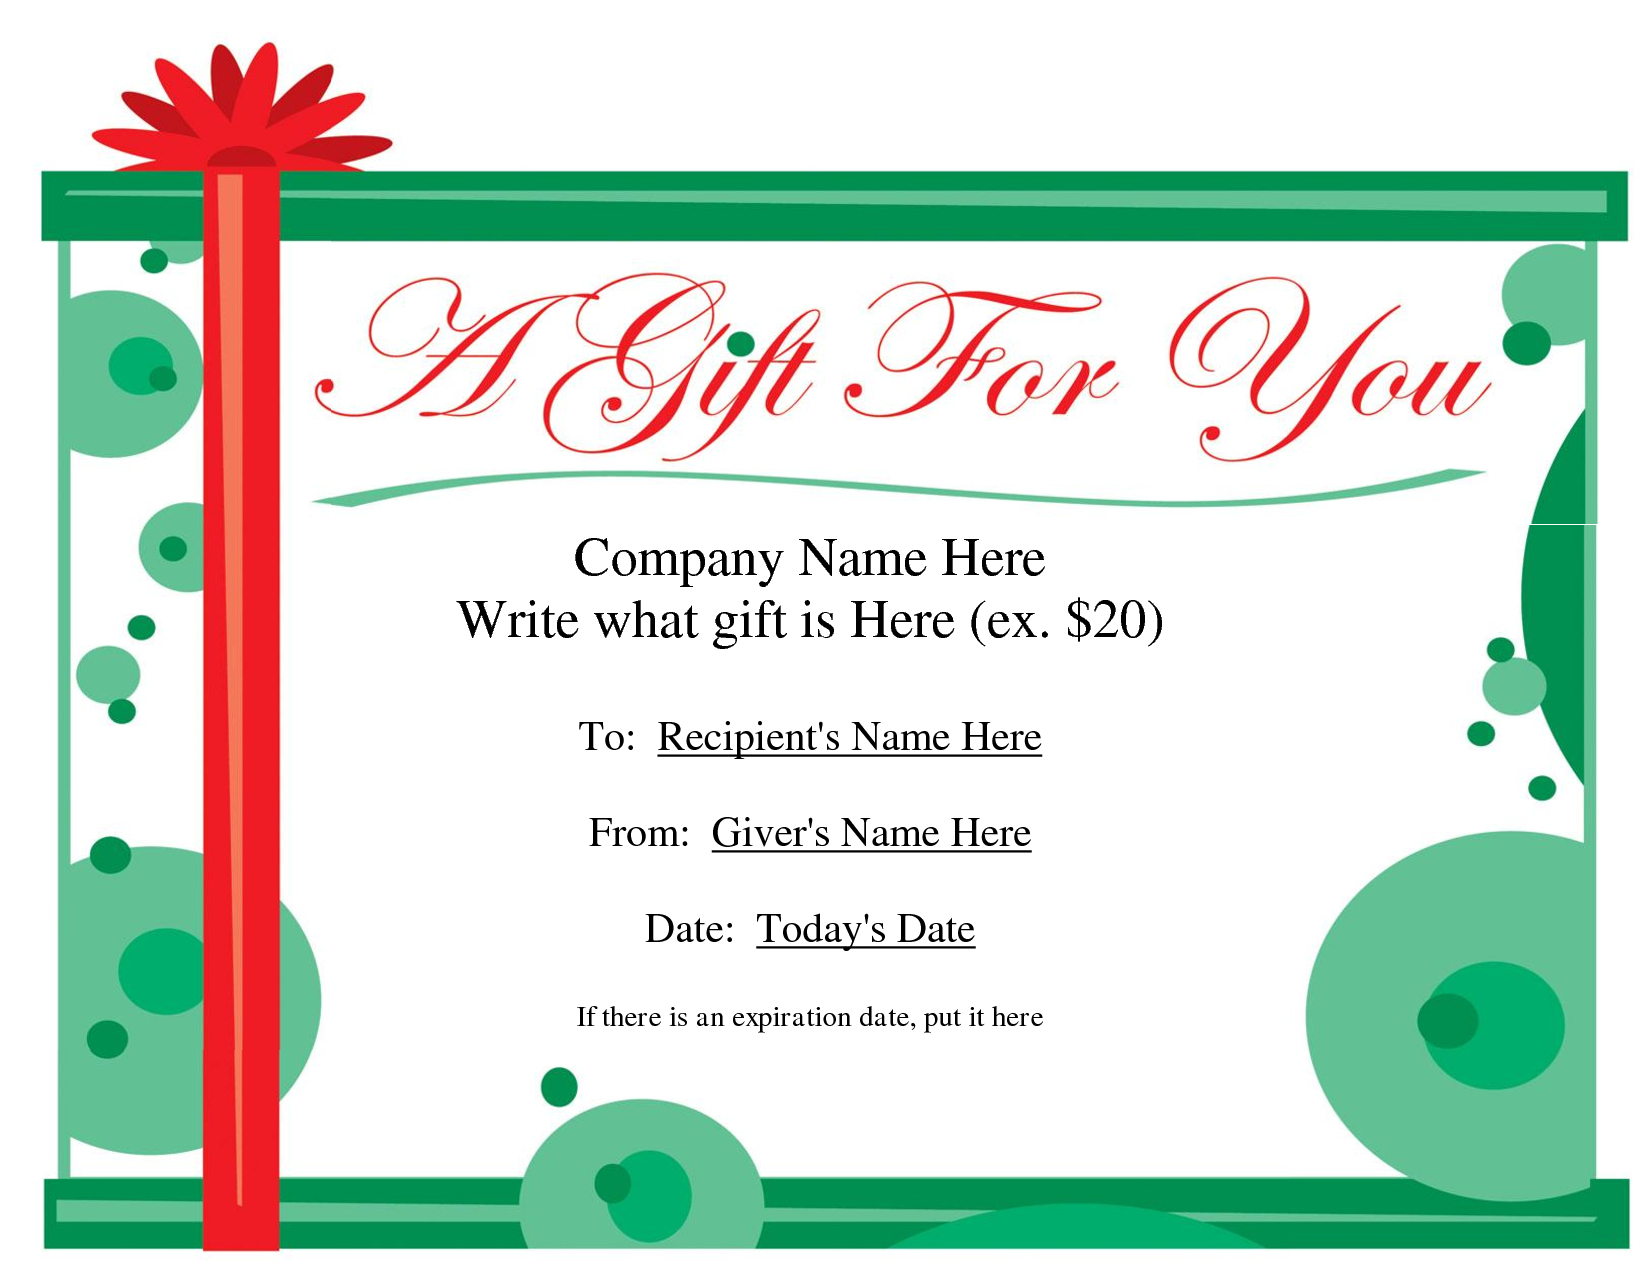 Free Christmas Gift Certificate Templates | Ideas For The House - Free Printable Christmas Gift Voucher Templates